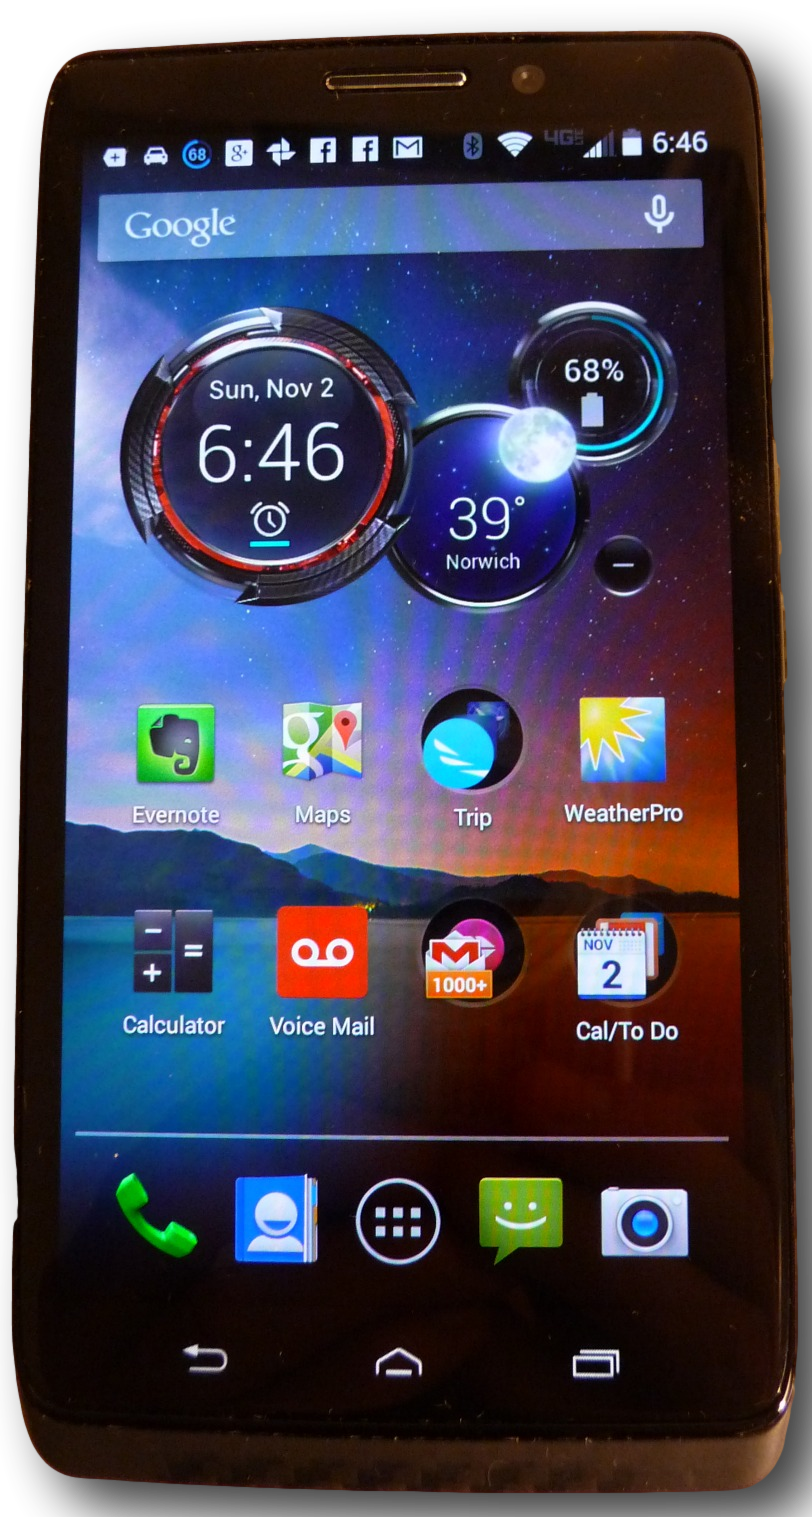 Droid Maxx CoverPhoto1 50 clipped rev 1 Best Smartphone: Droid Maxx   The Power To Get Things Done